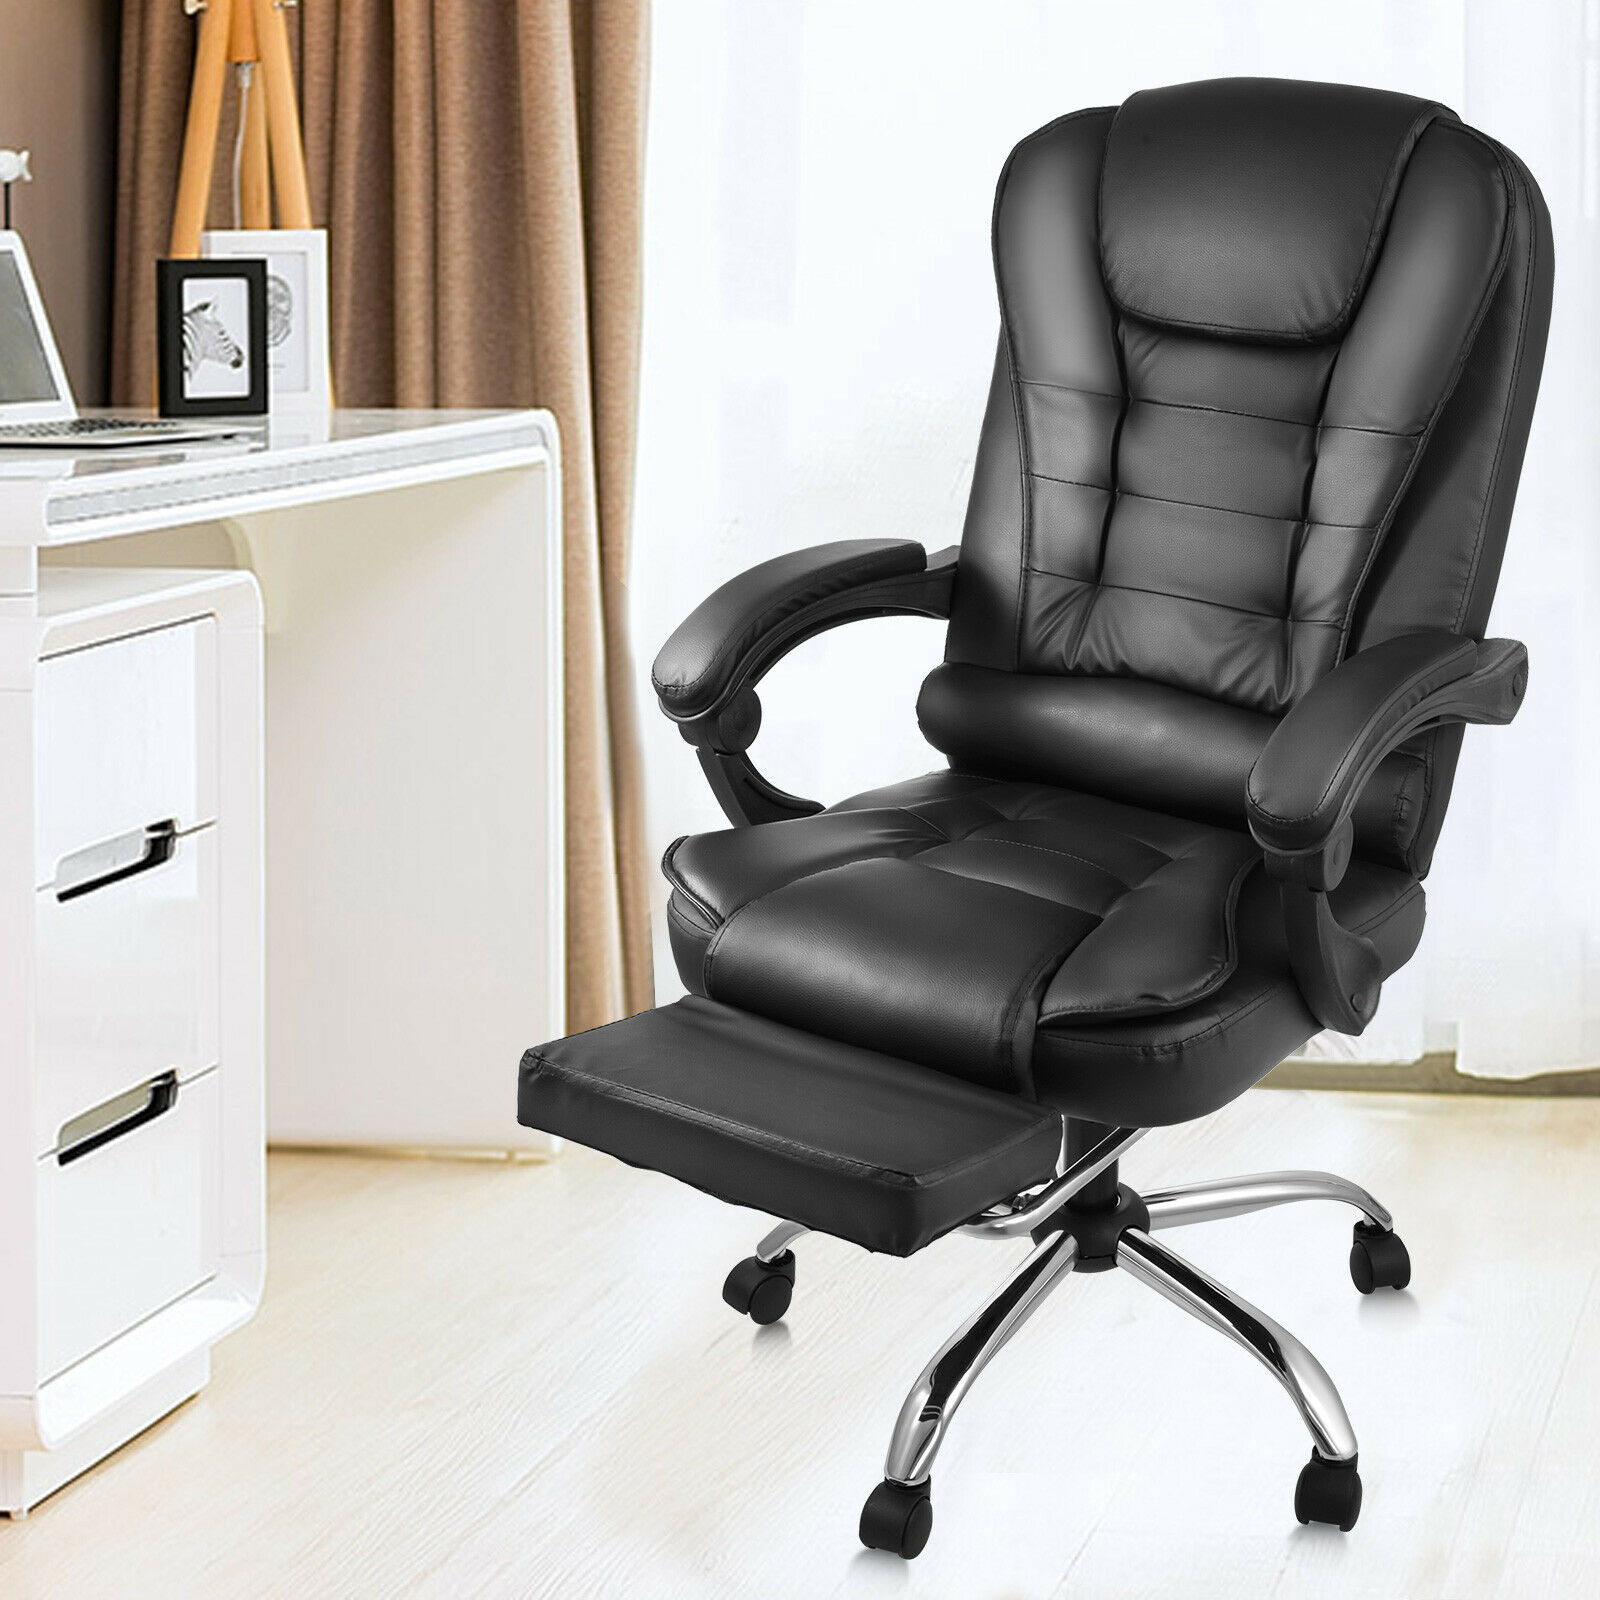 Reclining Computer Chair Gaming Chair Office Chair Leather High Back Recliner